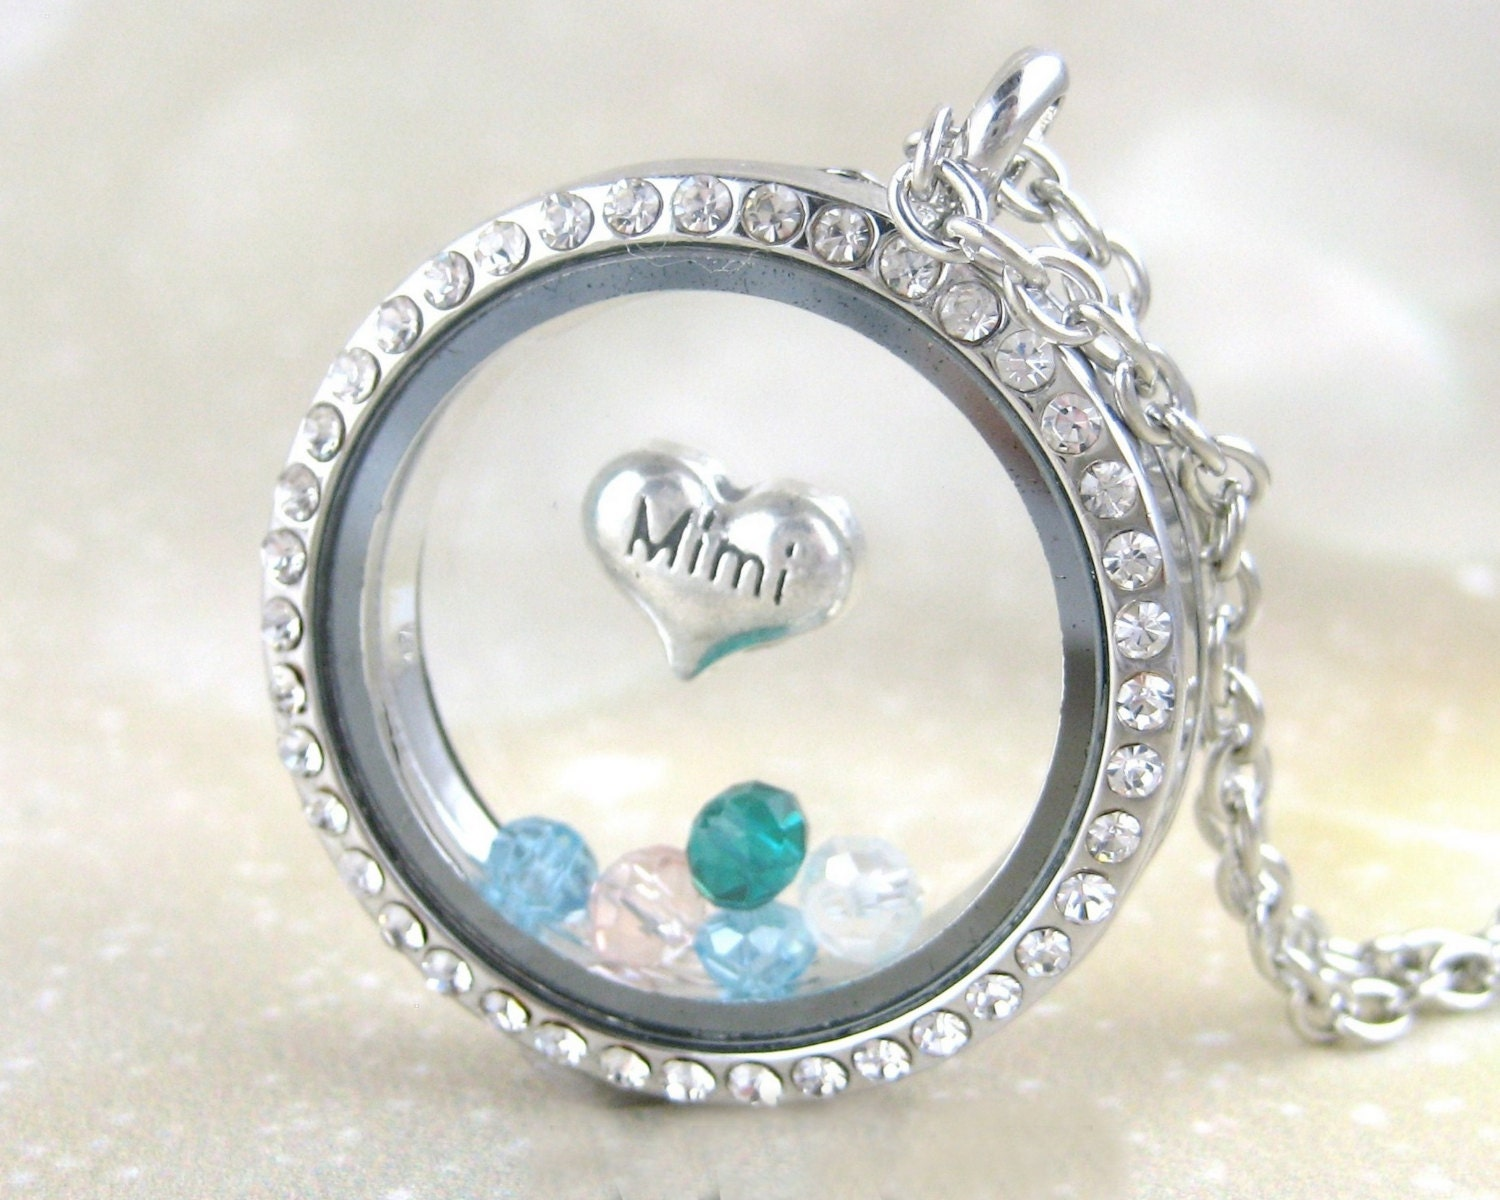 mimi necklace mimi gift personalized necklace